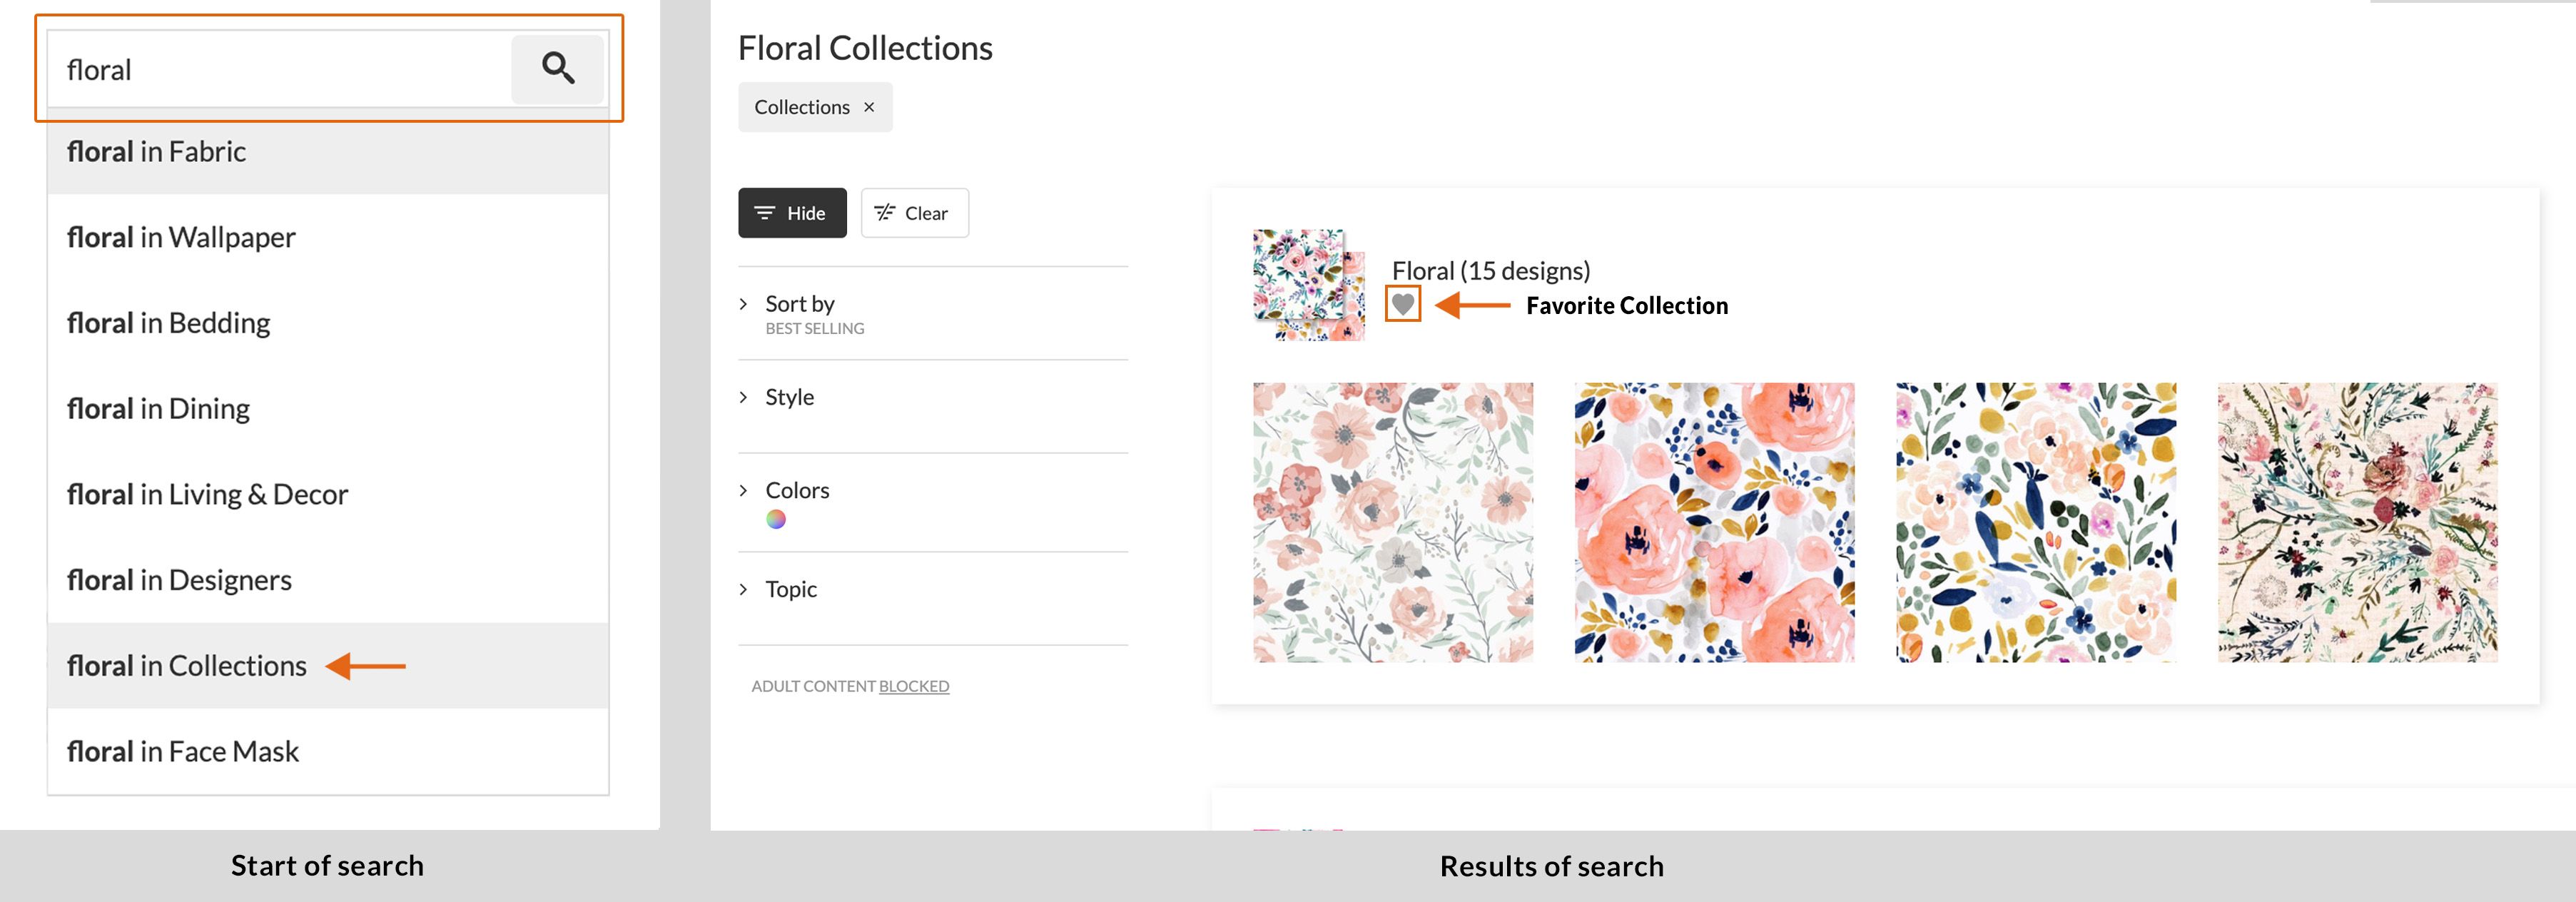 Search_Favorite_Collections_1.jpg